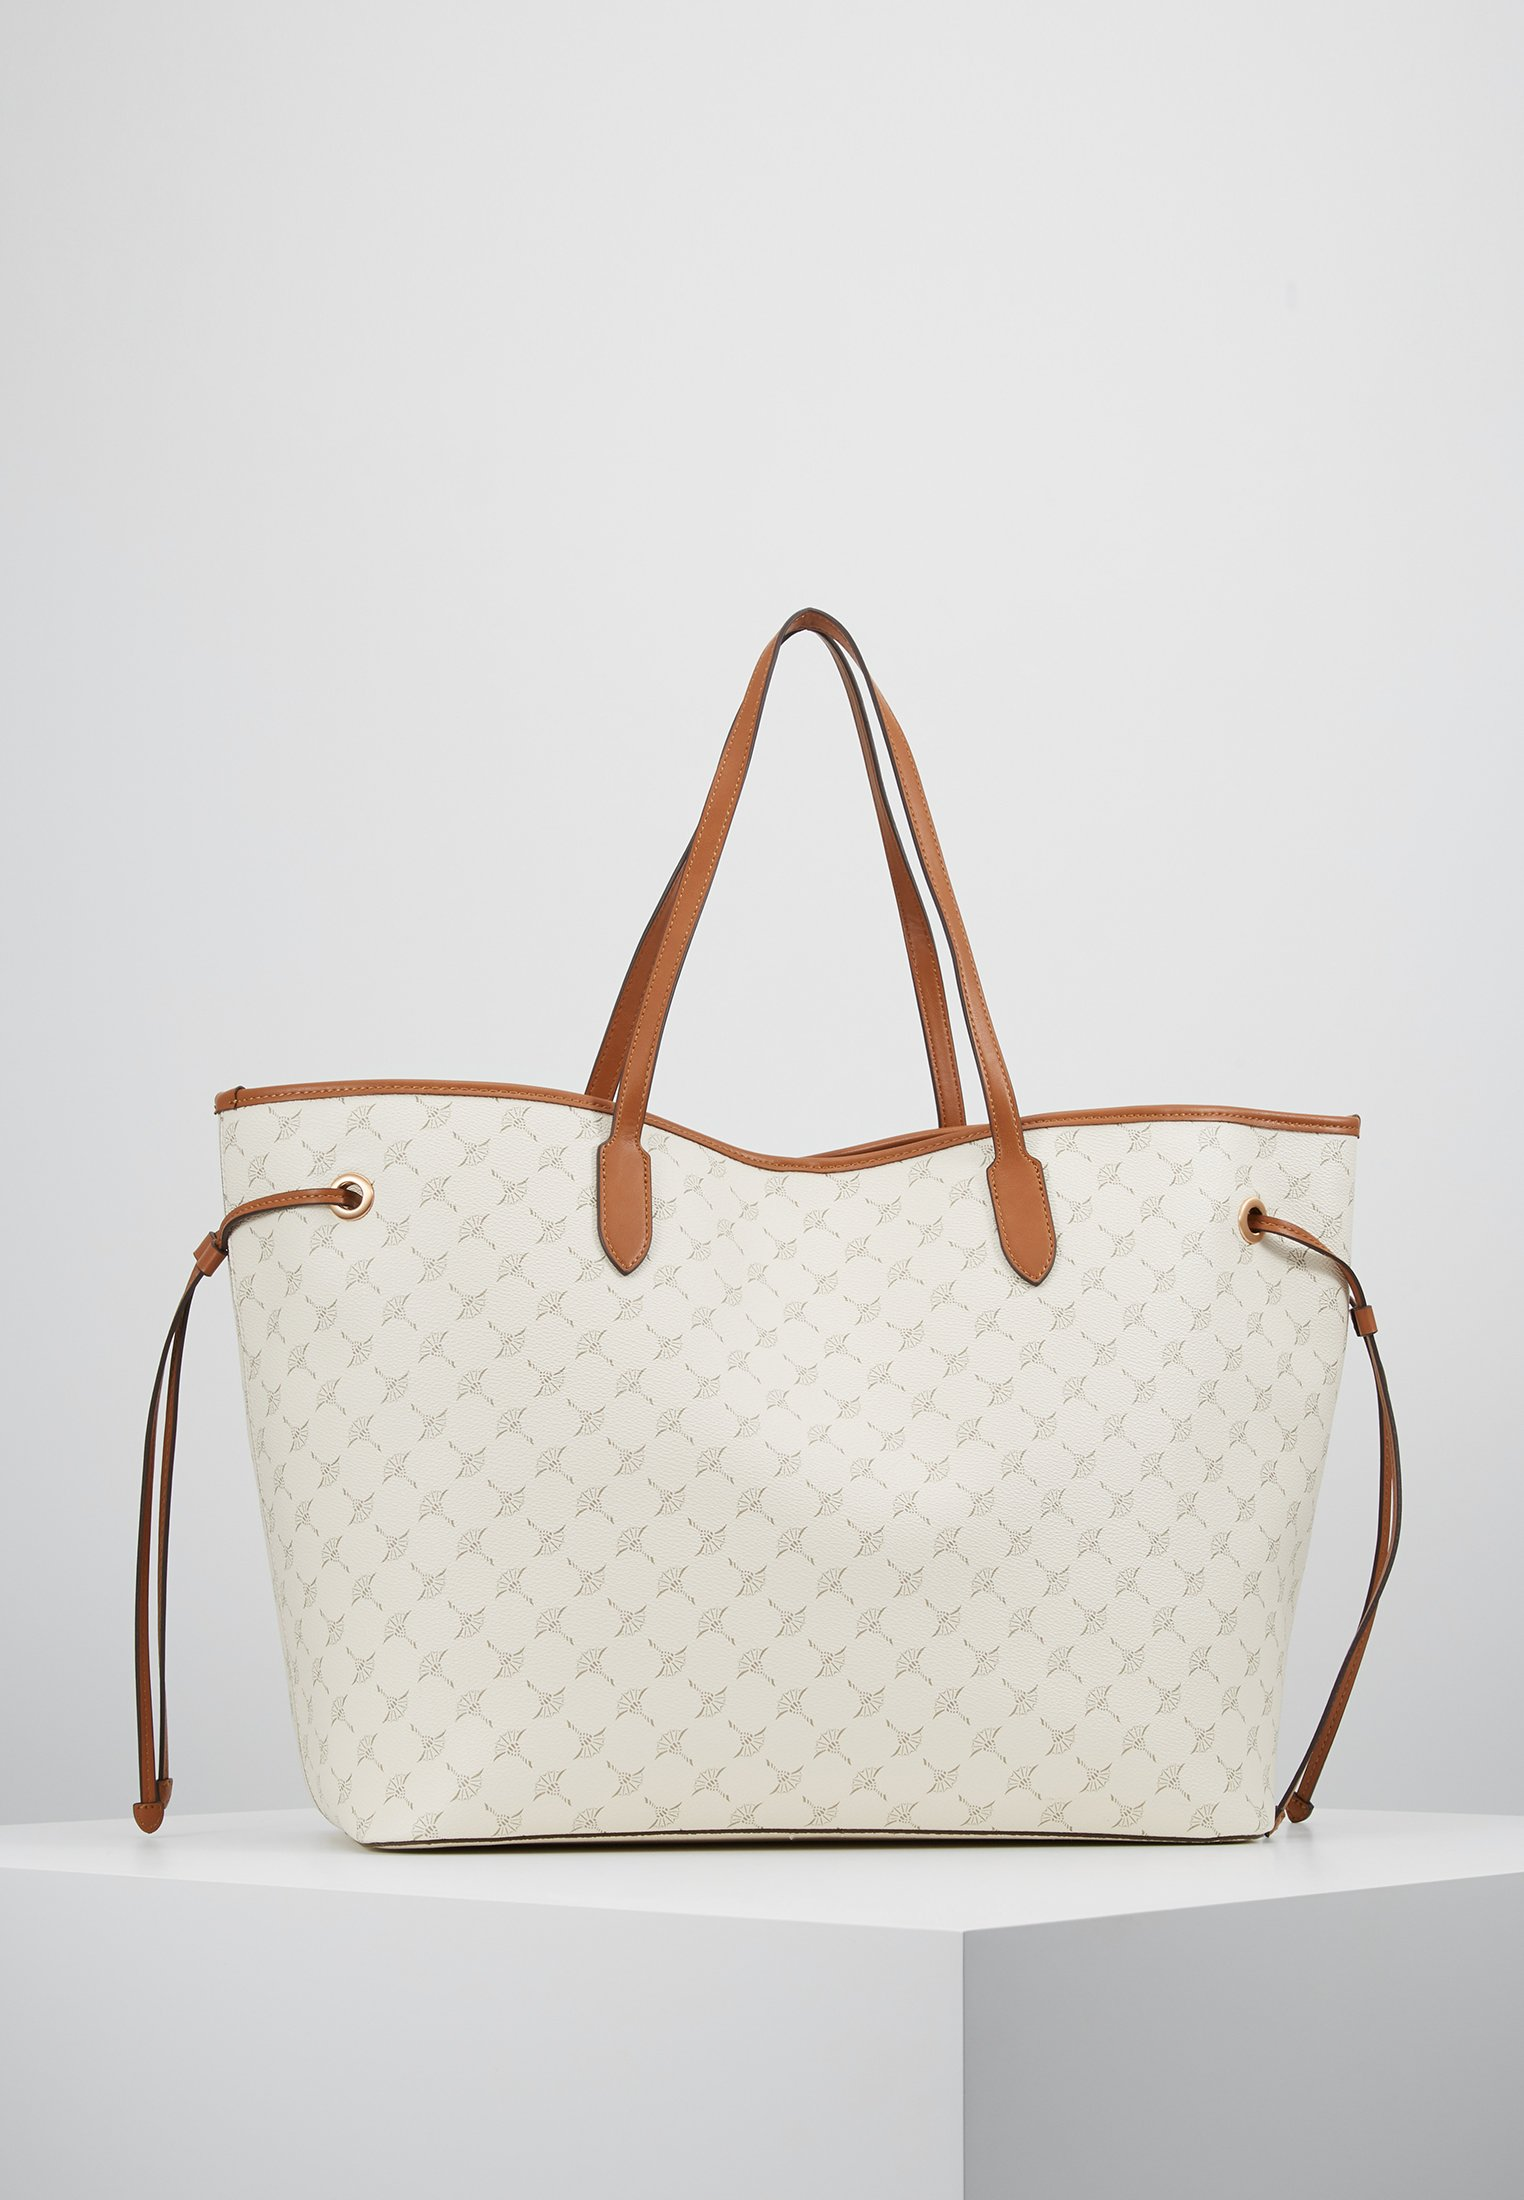 JOOP! Tote bag - offwhite - Women's Bags Affordable